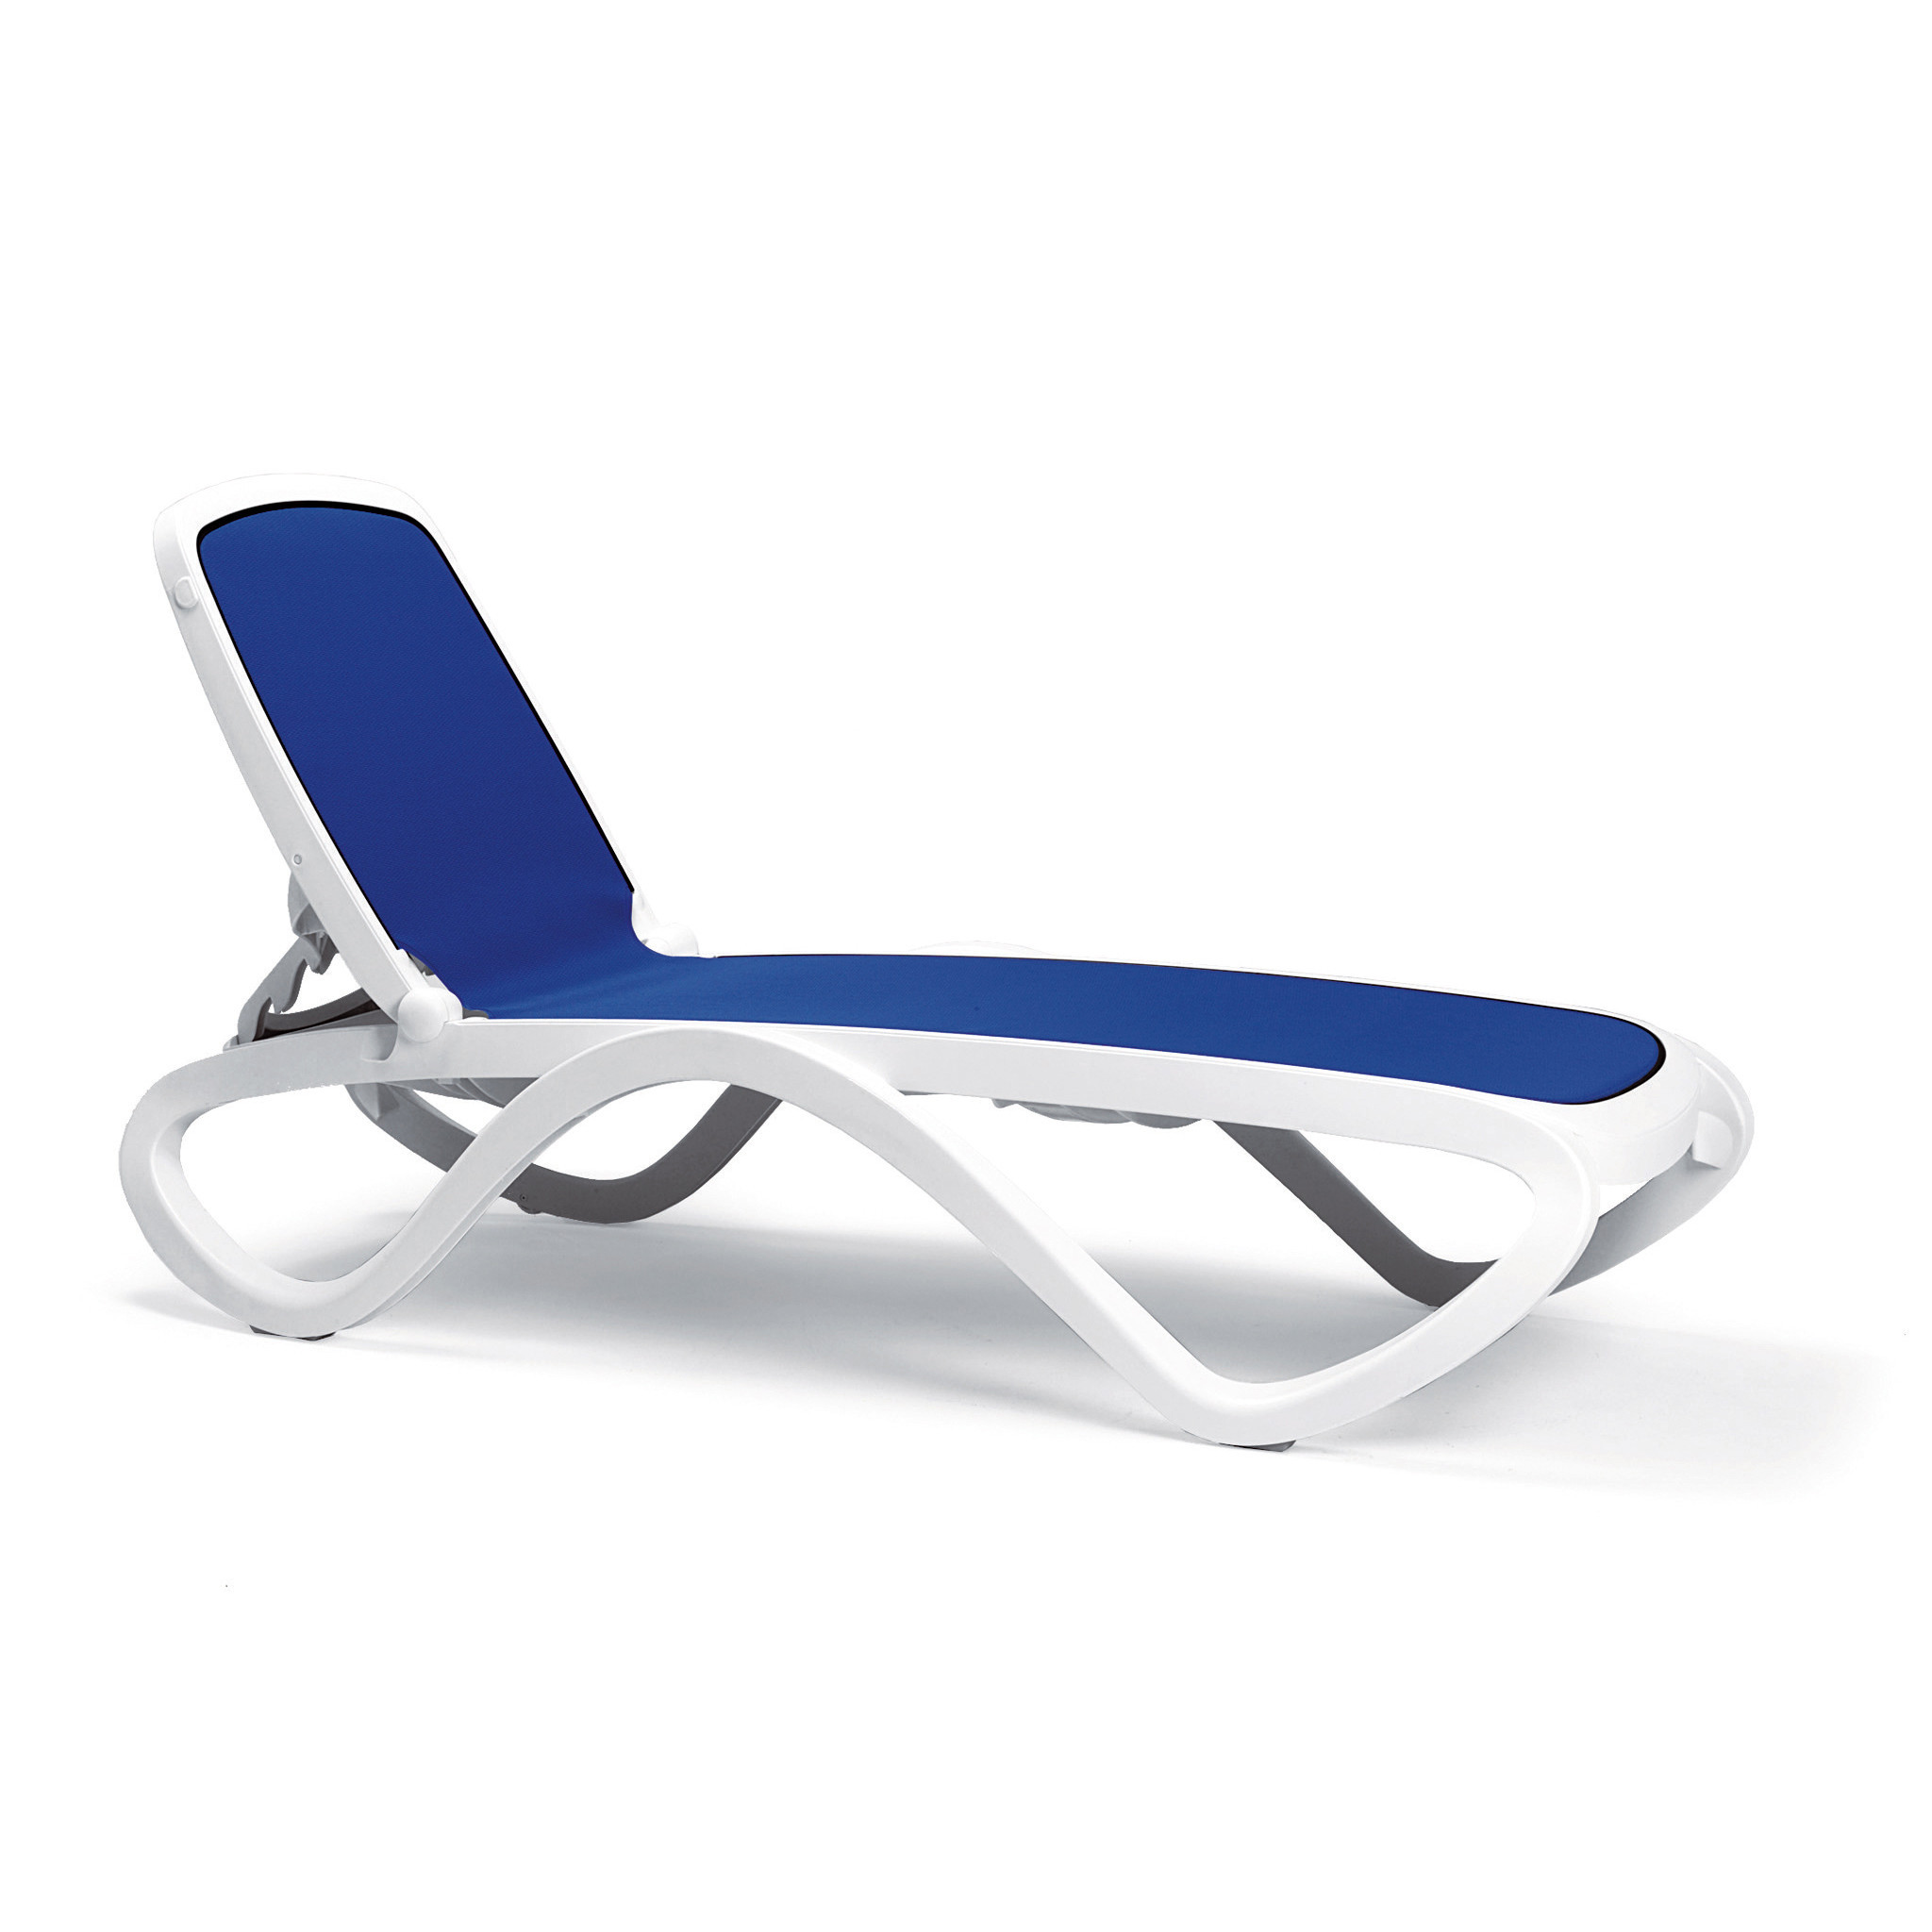 indoor folding chairs nz tufted parsons dining chair omega sun lounger | bydezign furniture